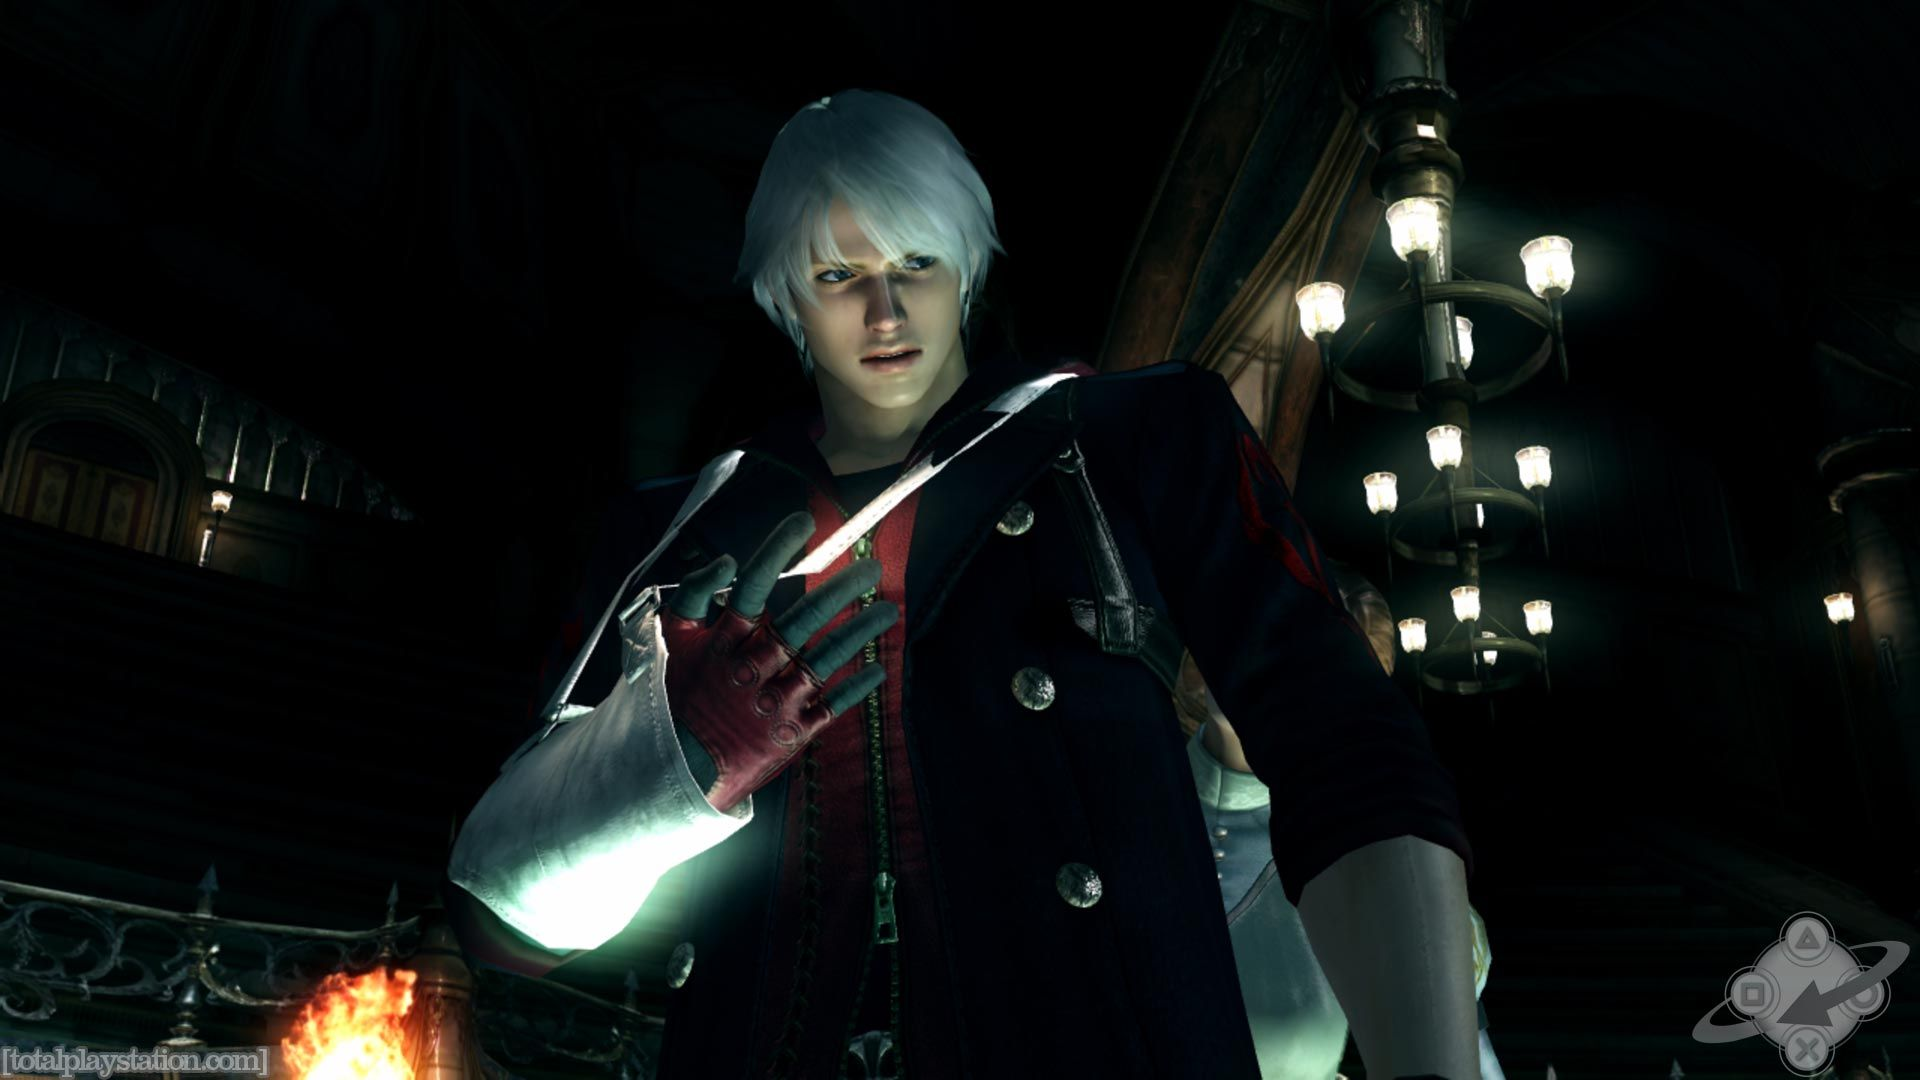 37 devil may cry 4 hd wallpapers backgrounds wallpaper abyss 37 devil may cry 4 hd wallpapers backgrounds wallpaper abyss voltagebd Choice Image